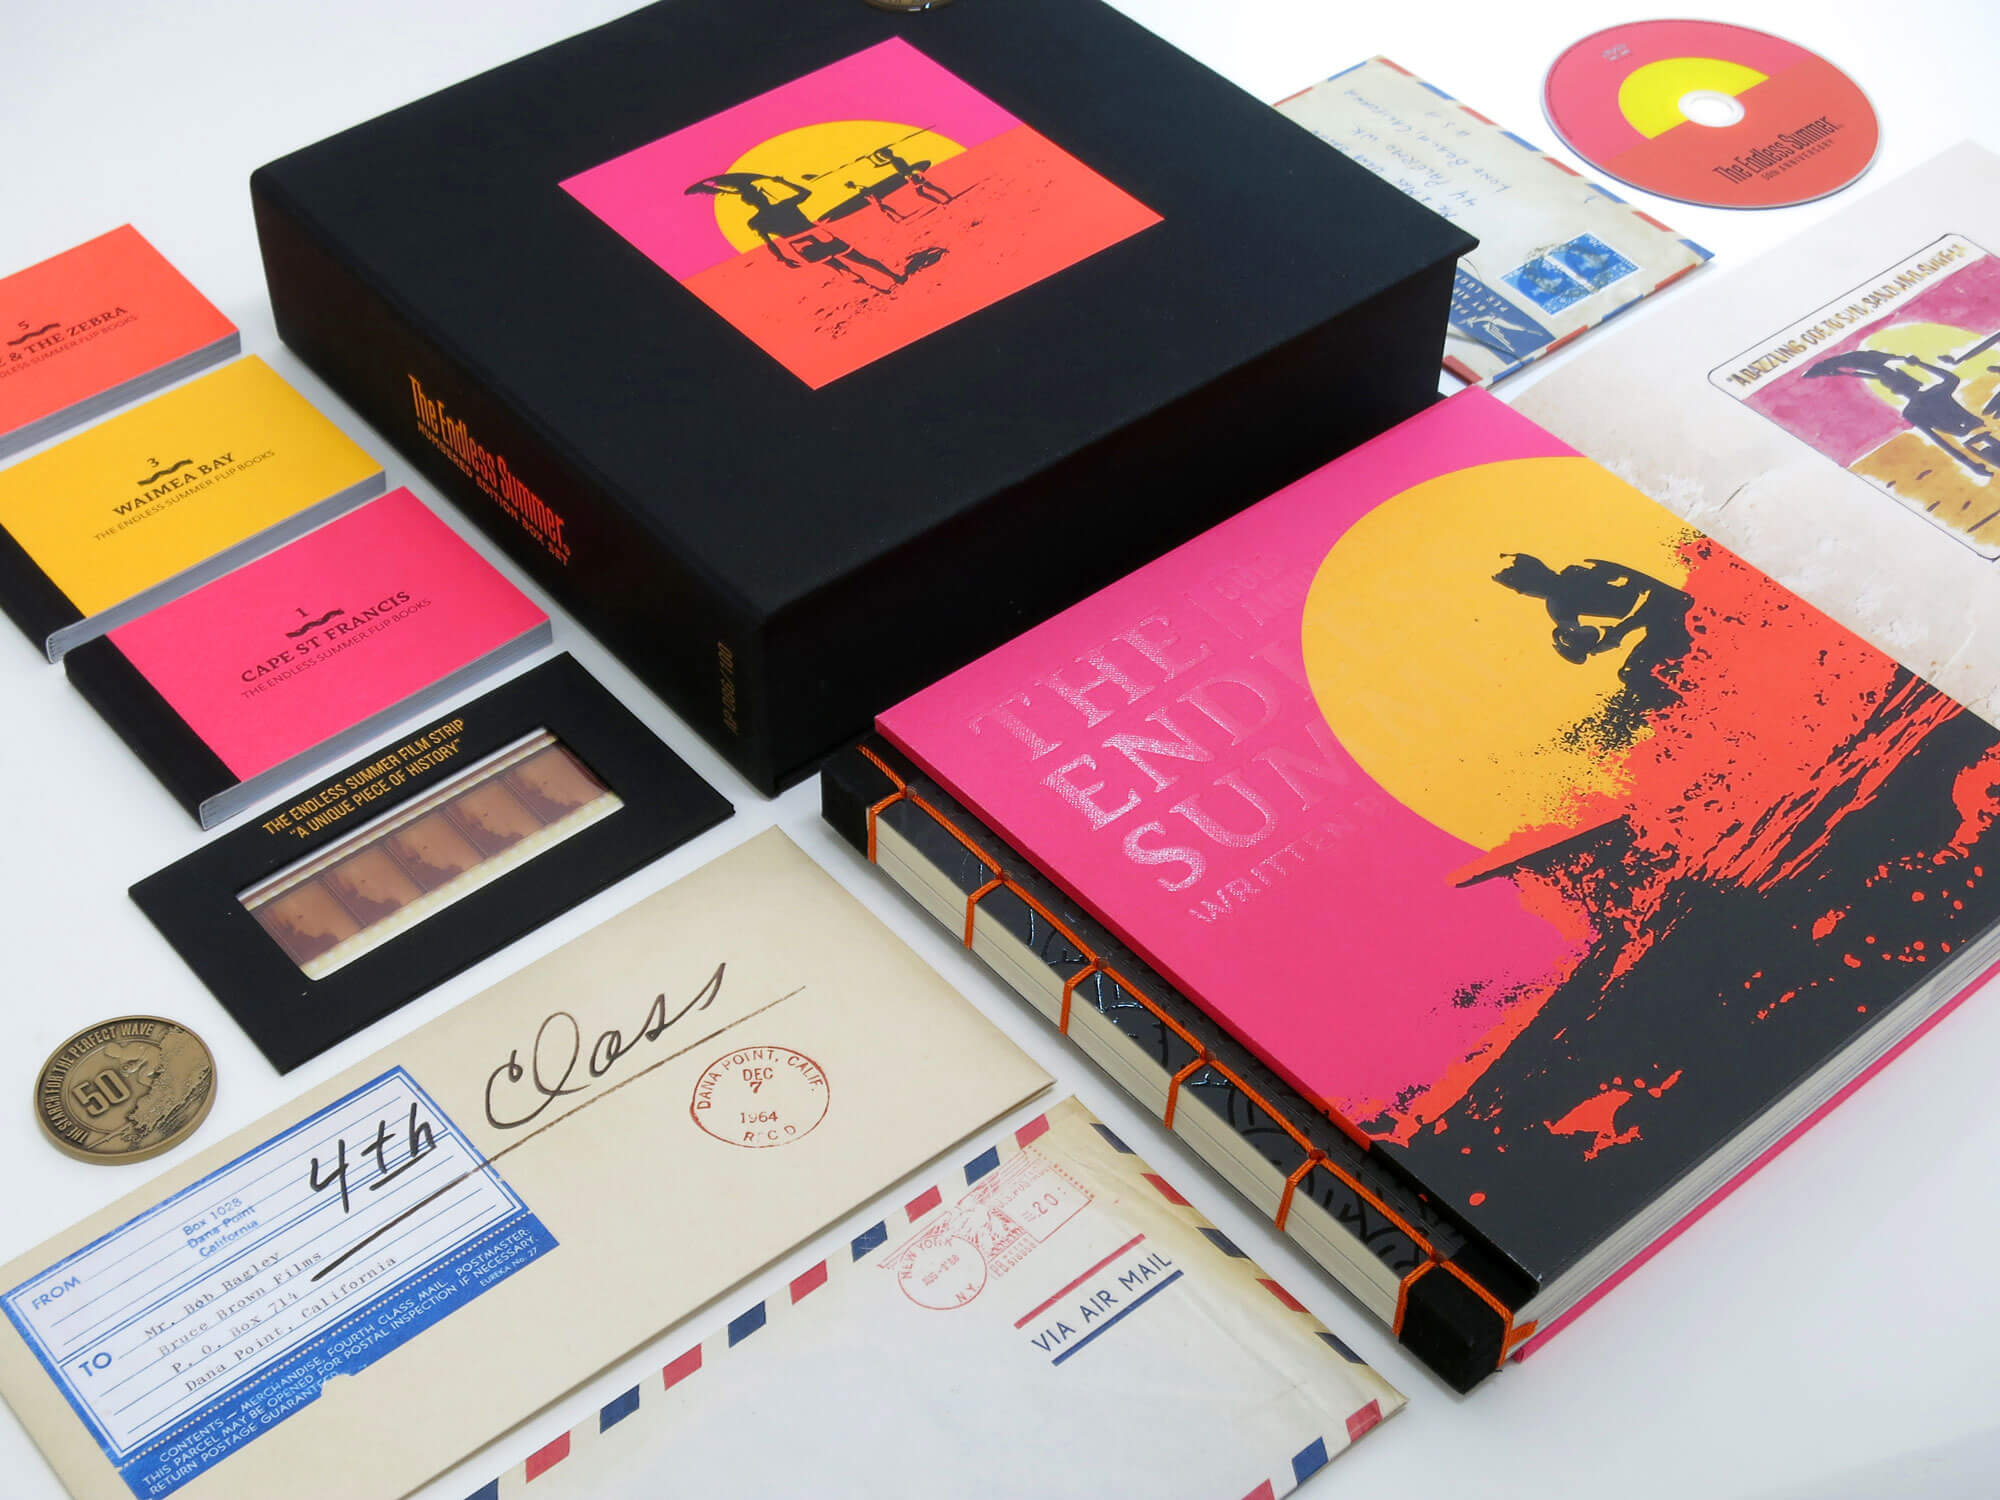 the endless summer limited edition book box set bruce brown films